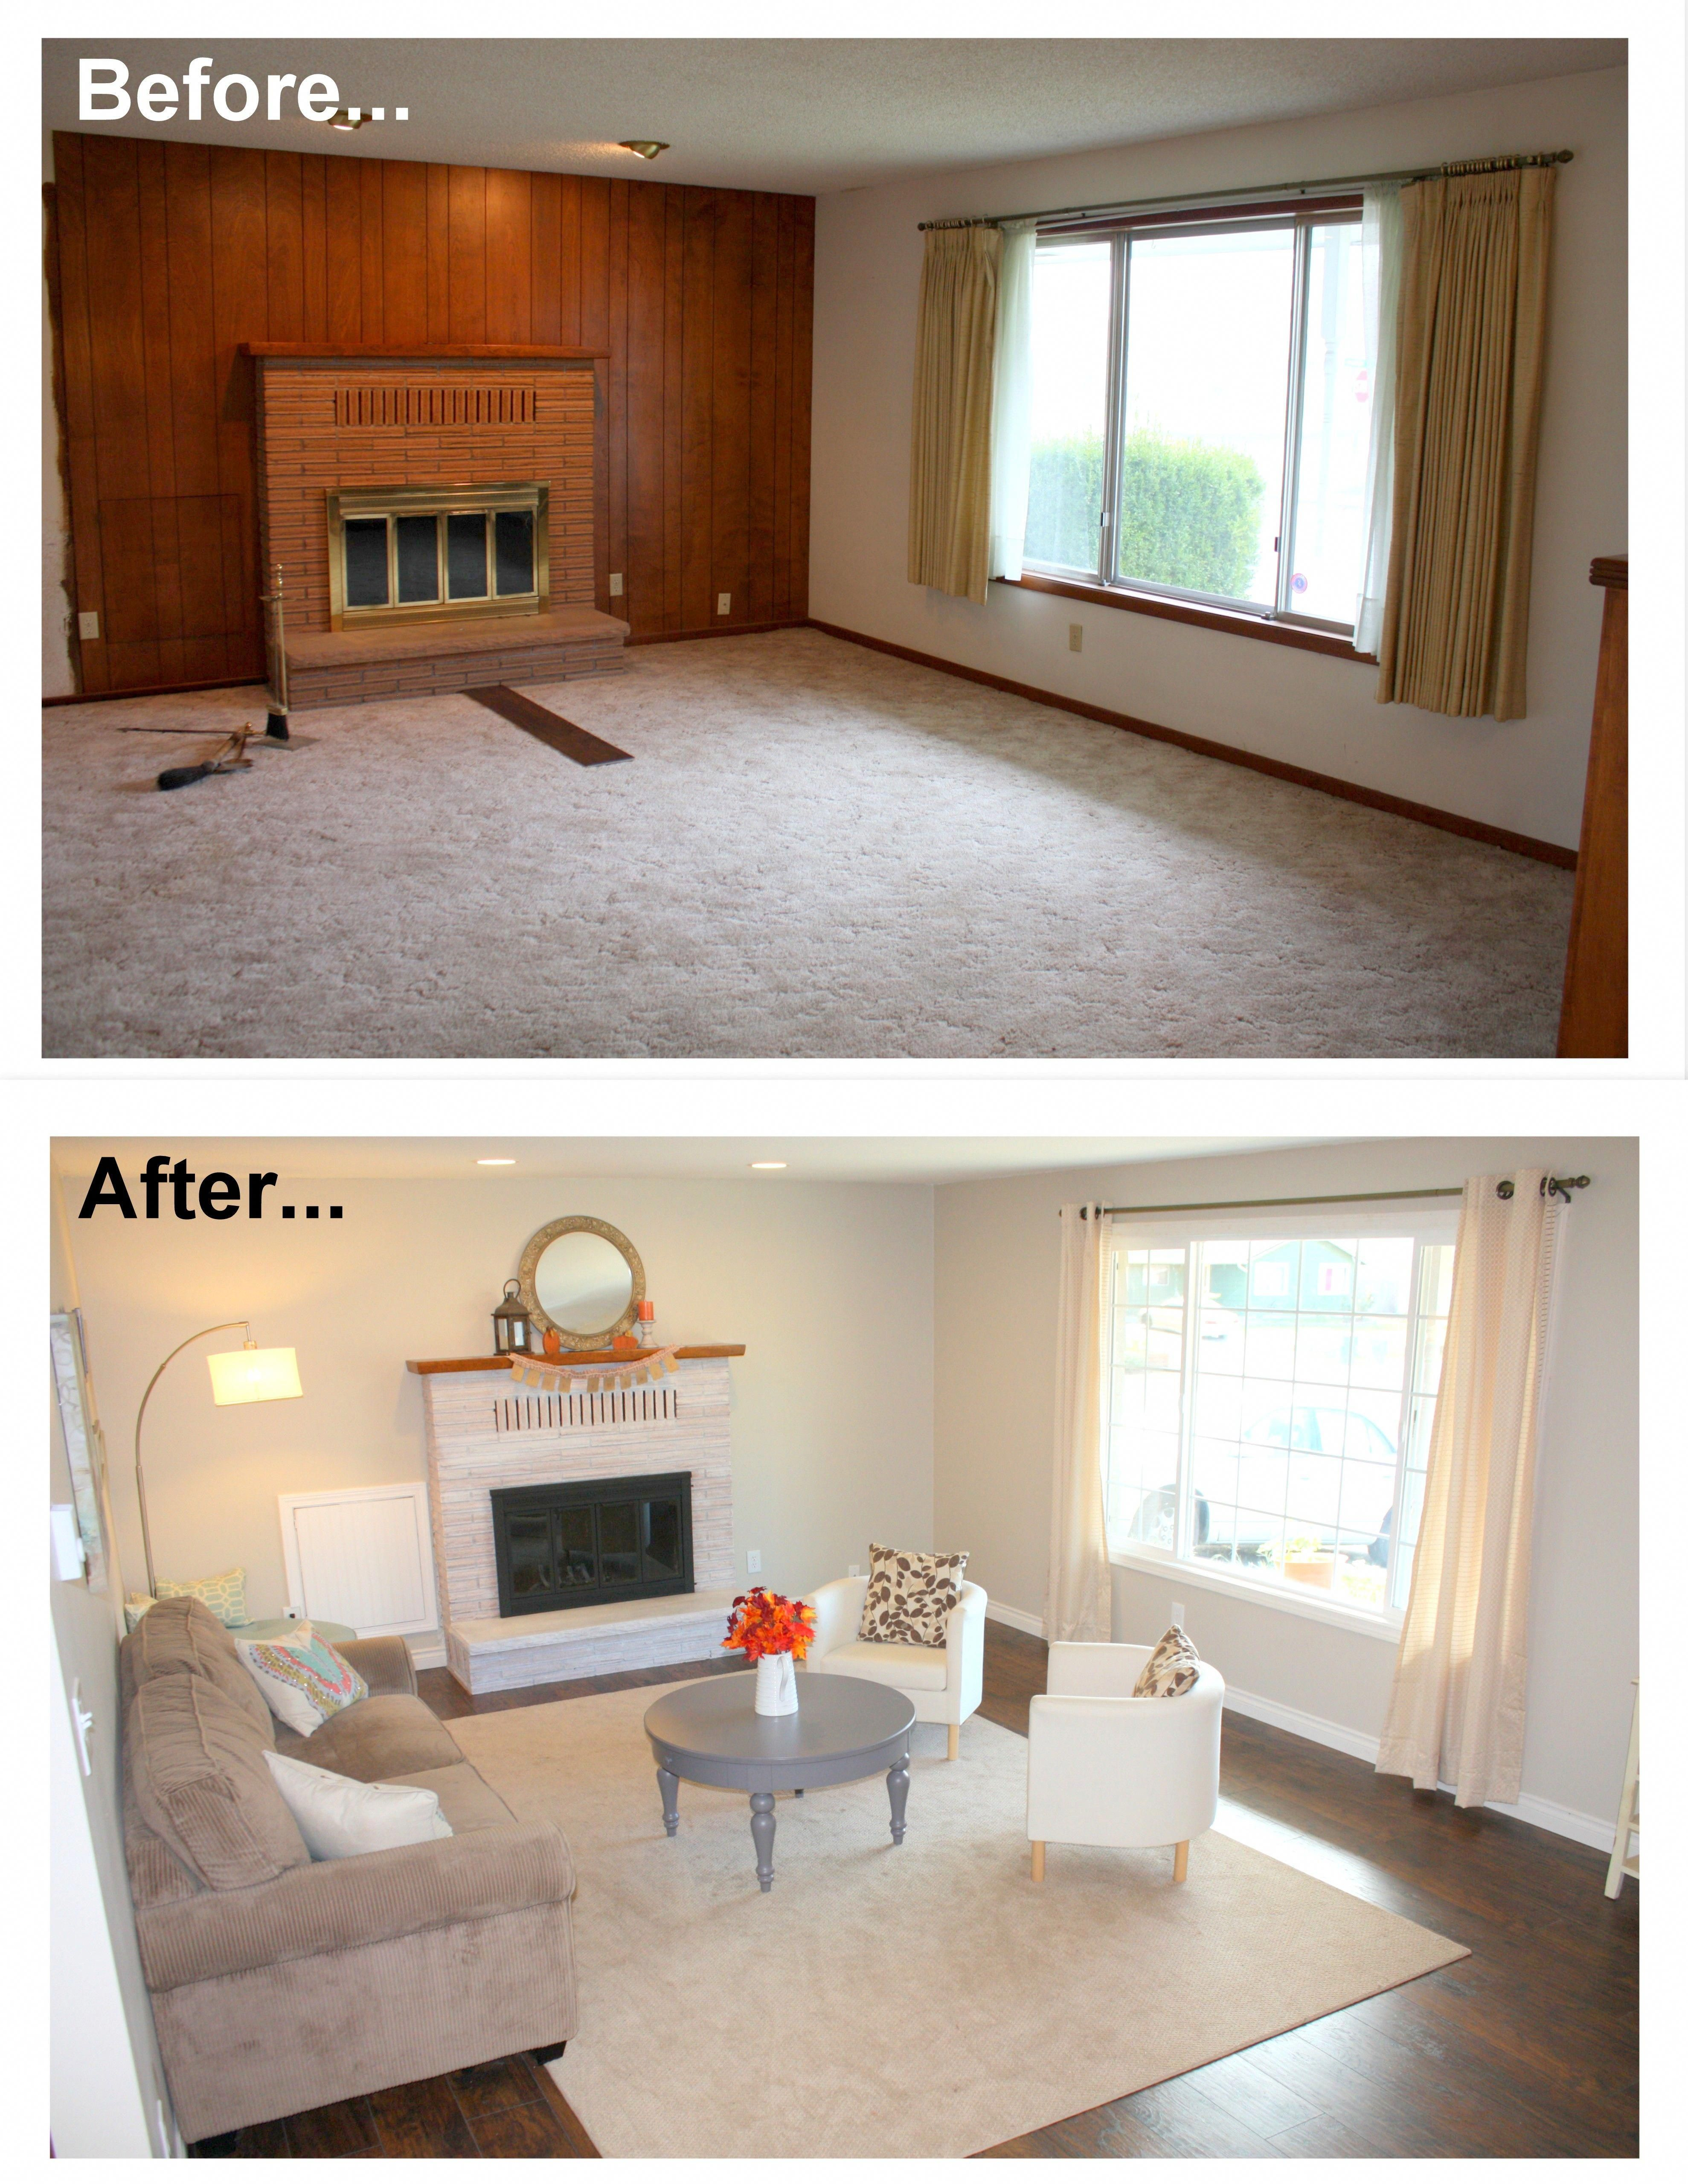 1960 S Living Room Makeover Remodel Before And After New Hardwood